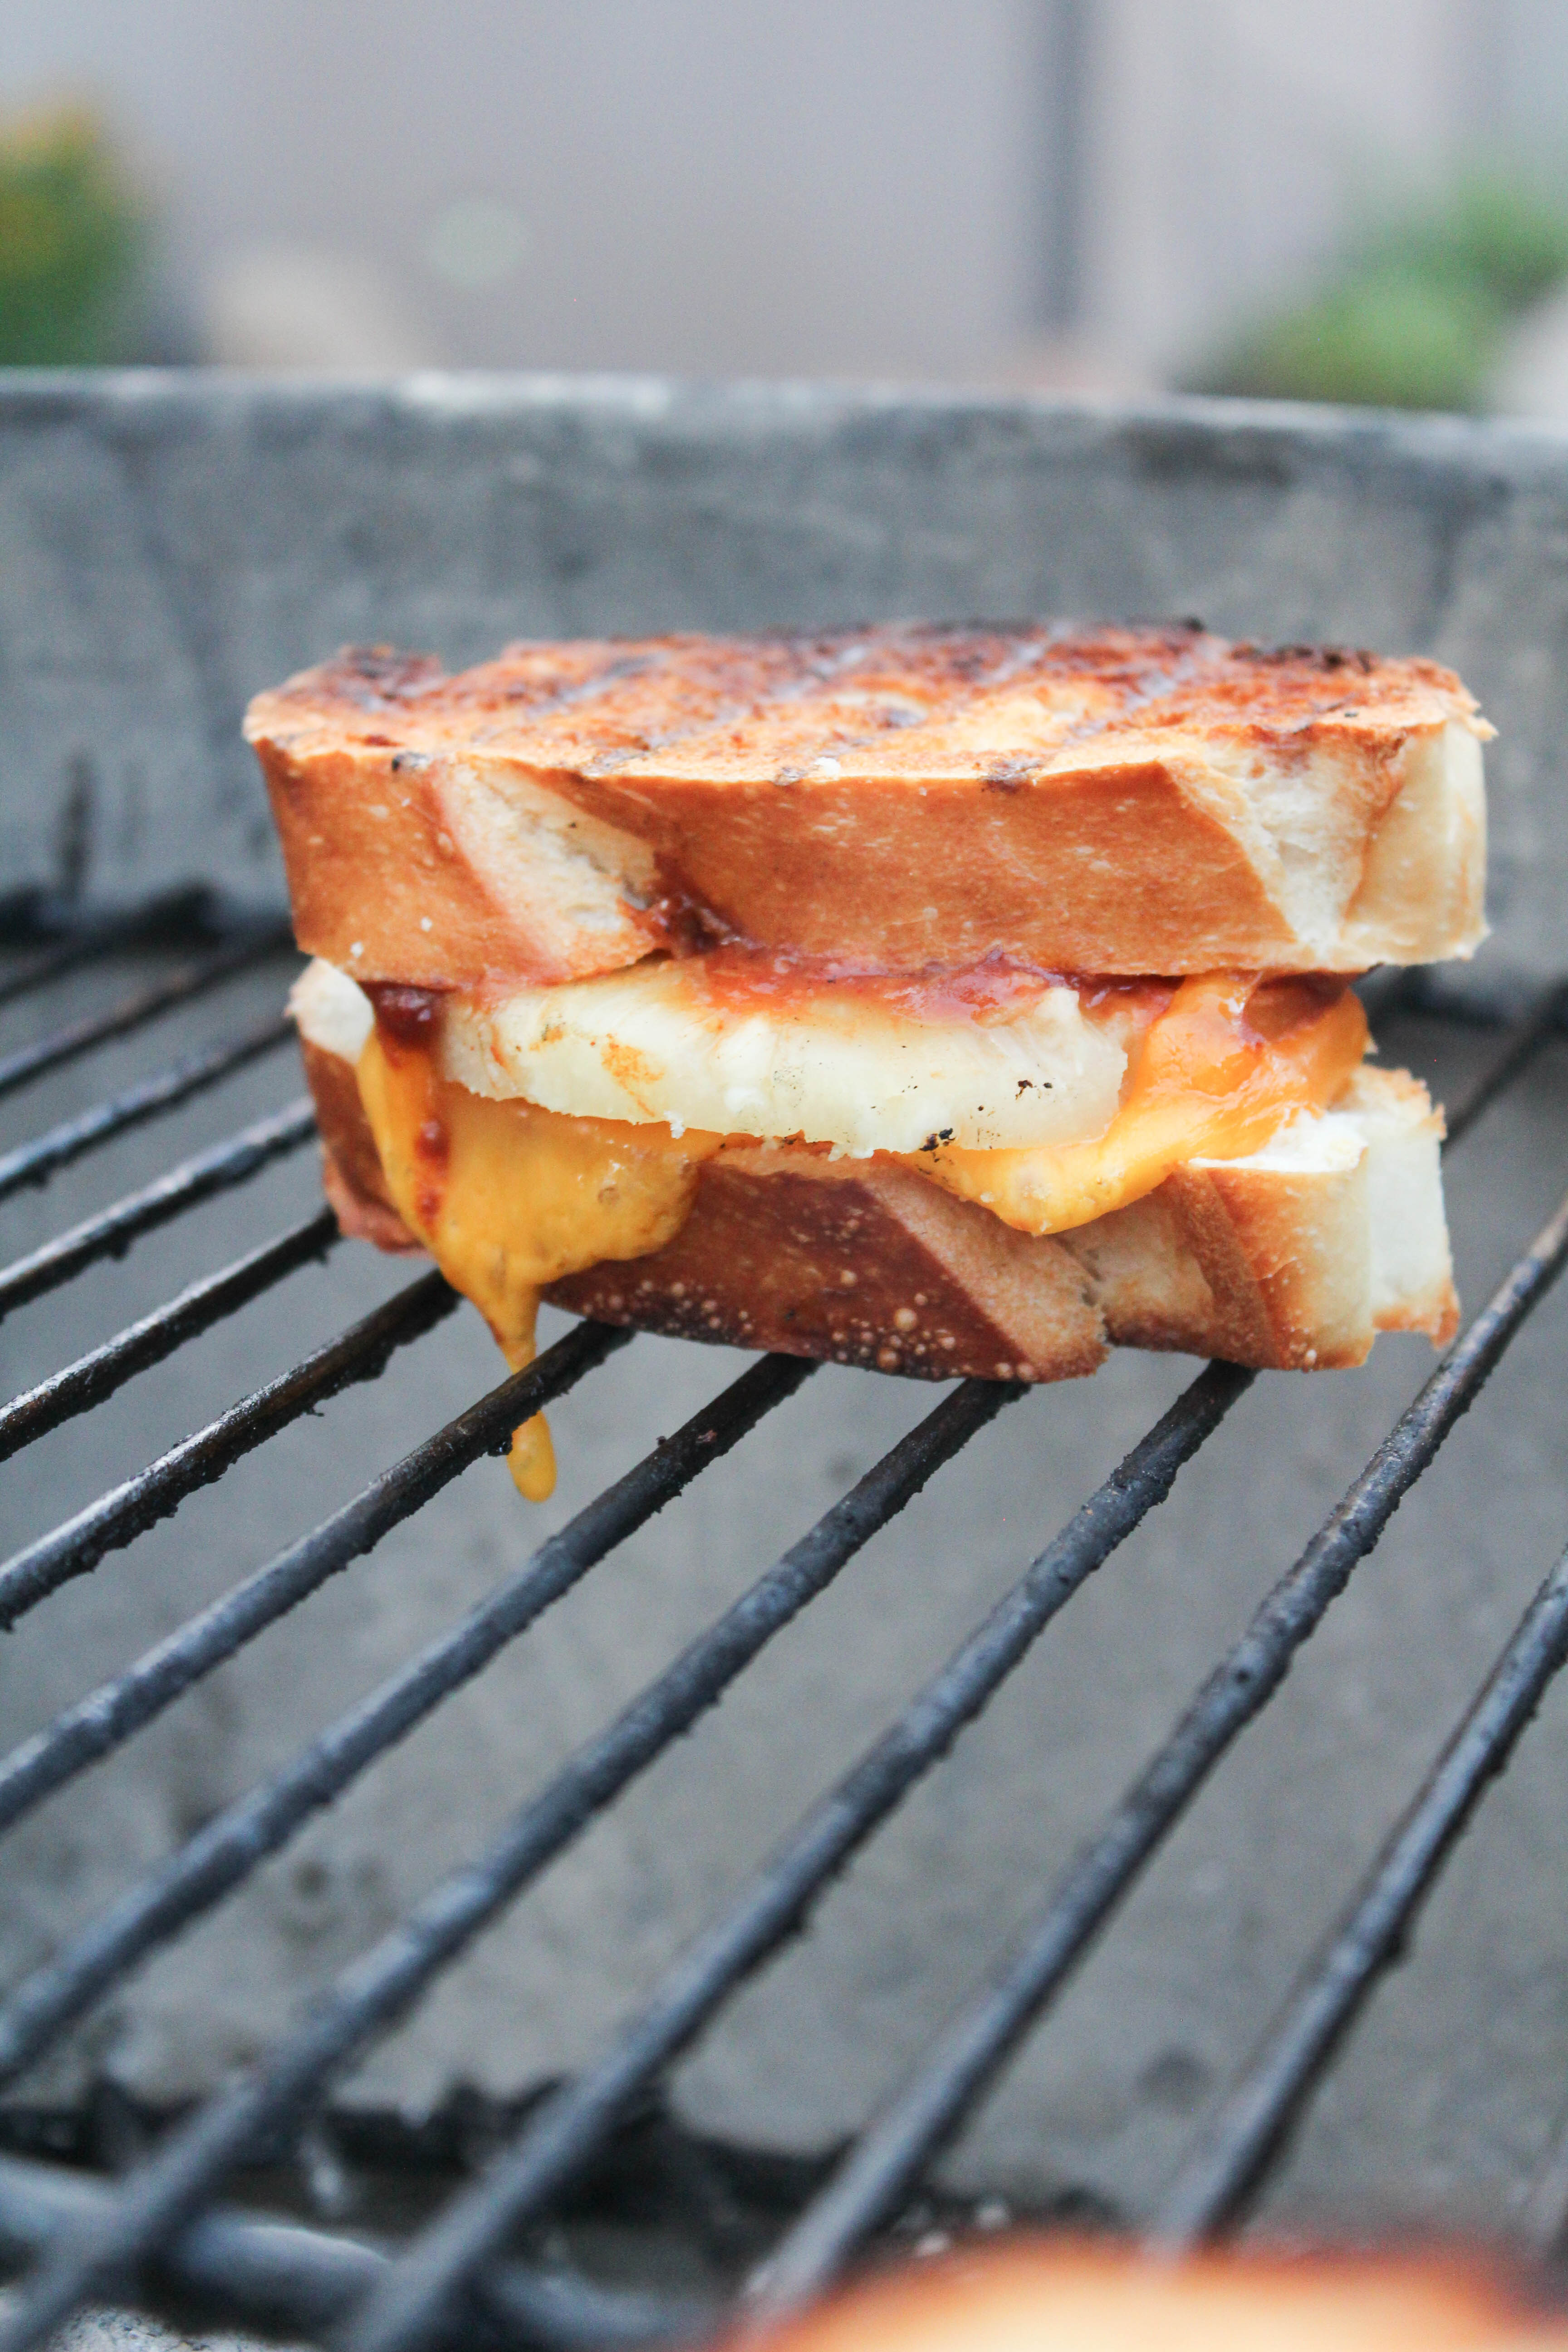 Tailgating: Gourmet Grilled Cheese Sandwiches - Let's ...